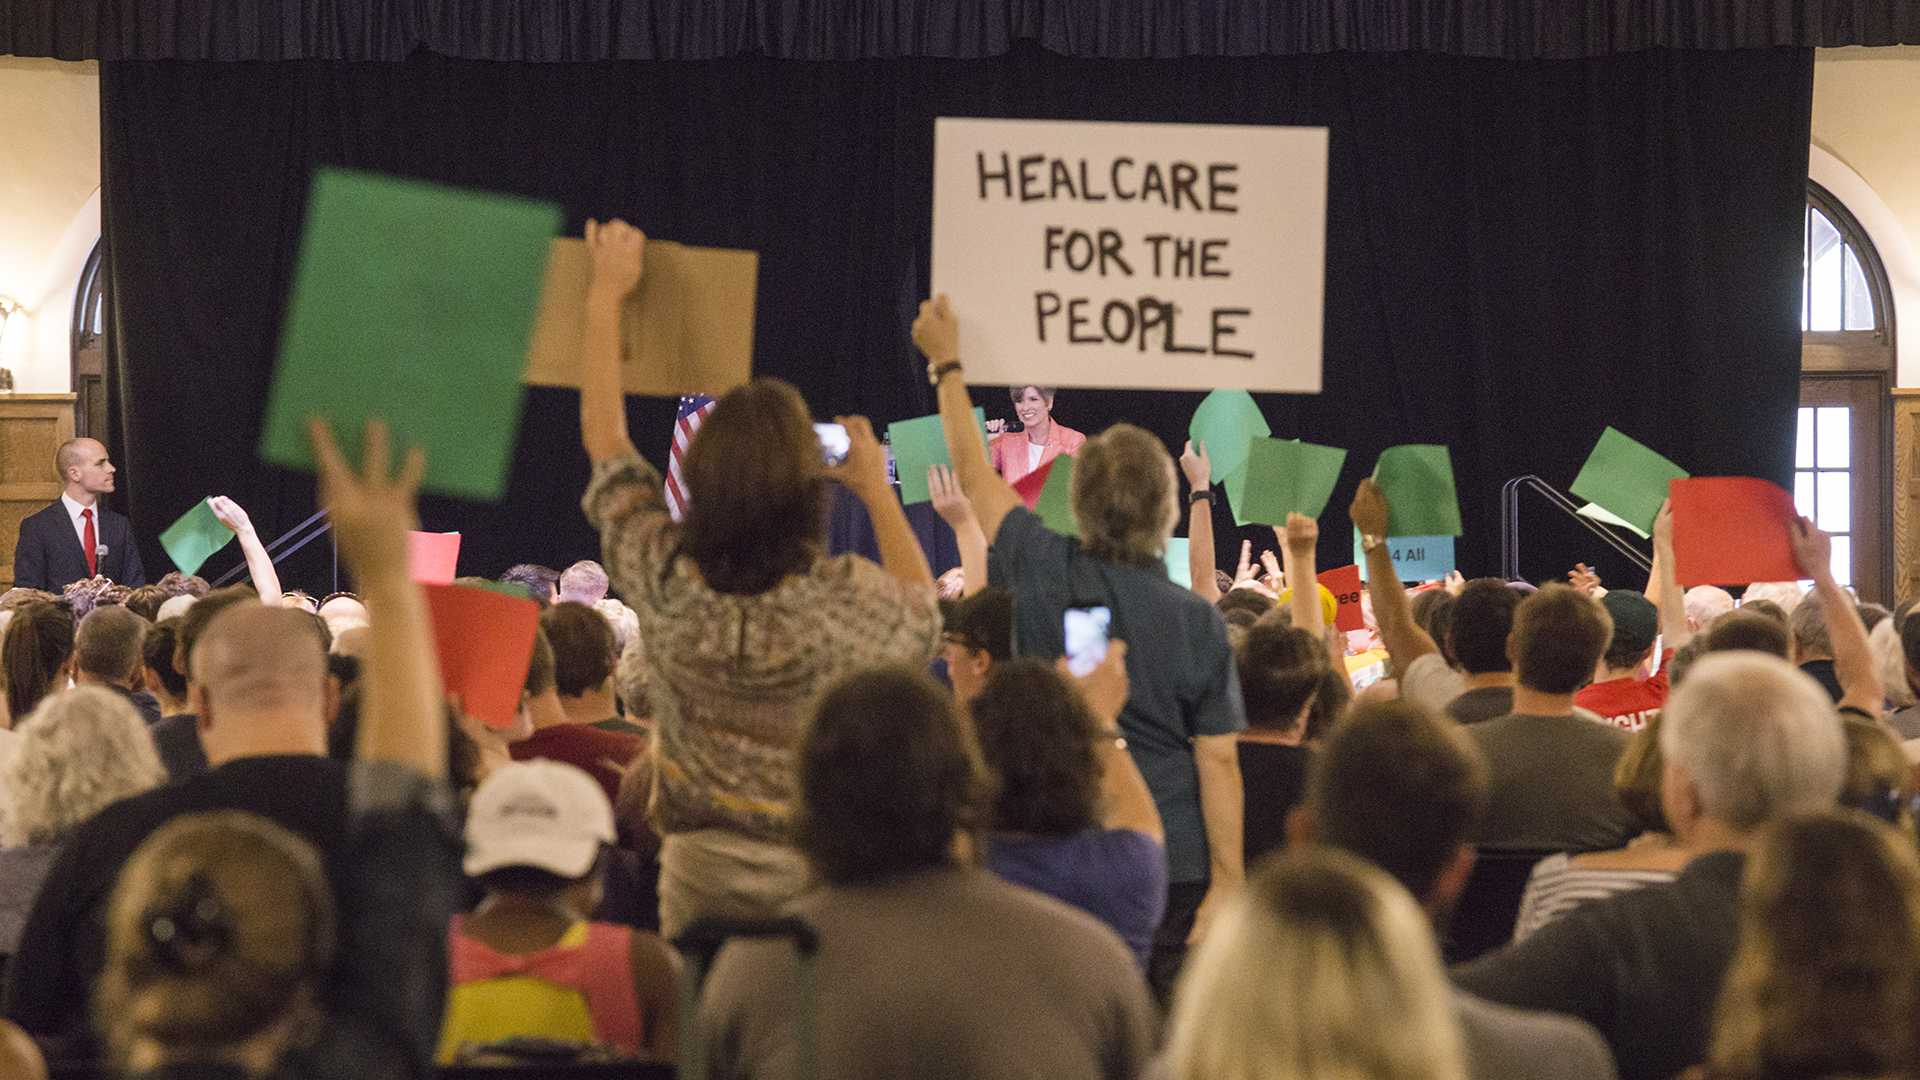 Attendees display their signs in protest to Sen. Joni Ernst's stance on the Graham-Cassidy bill at a Town Hall meeting in the Iowa Memorial Union on Friday, Sept. 22, 2017. (James Year/The Daily Iowan)